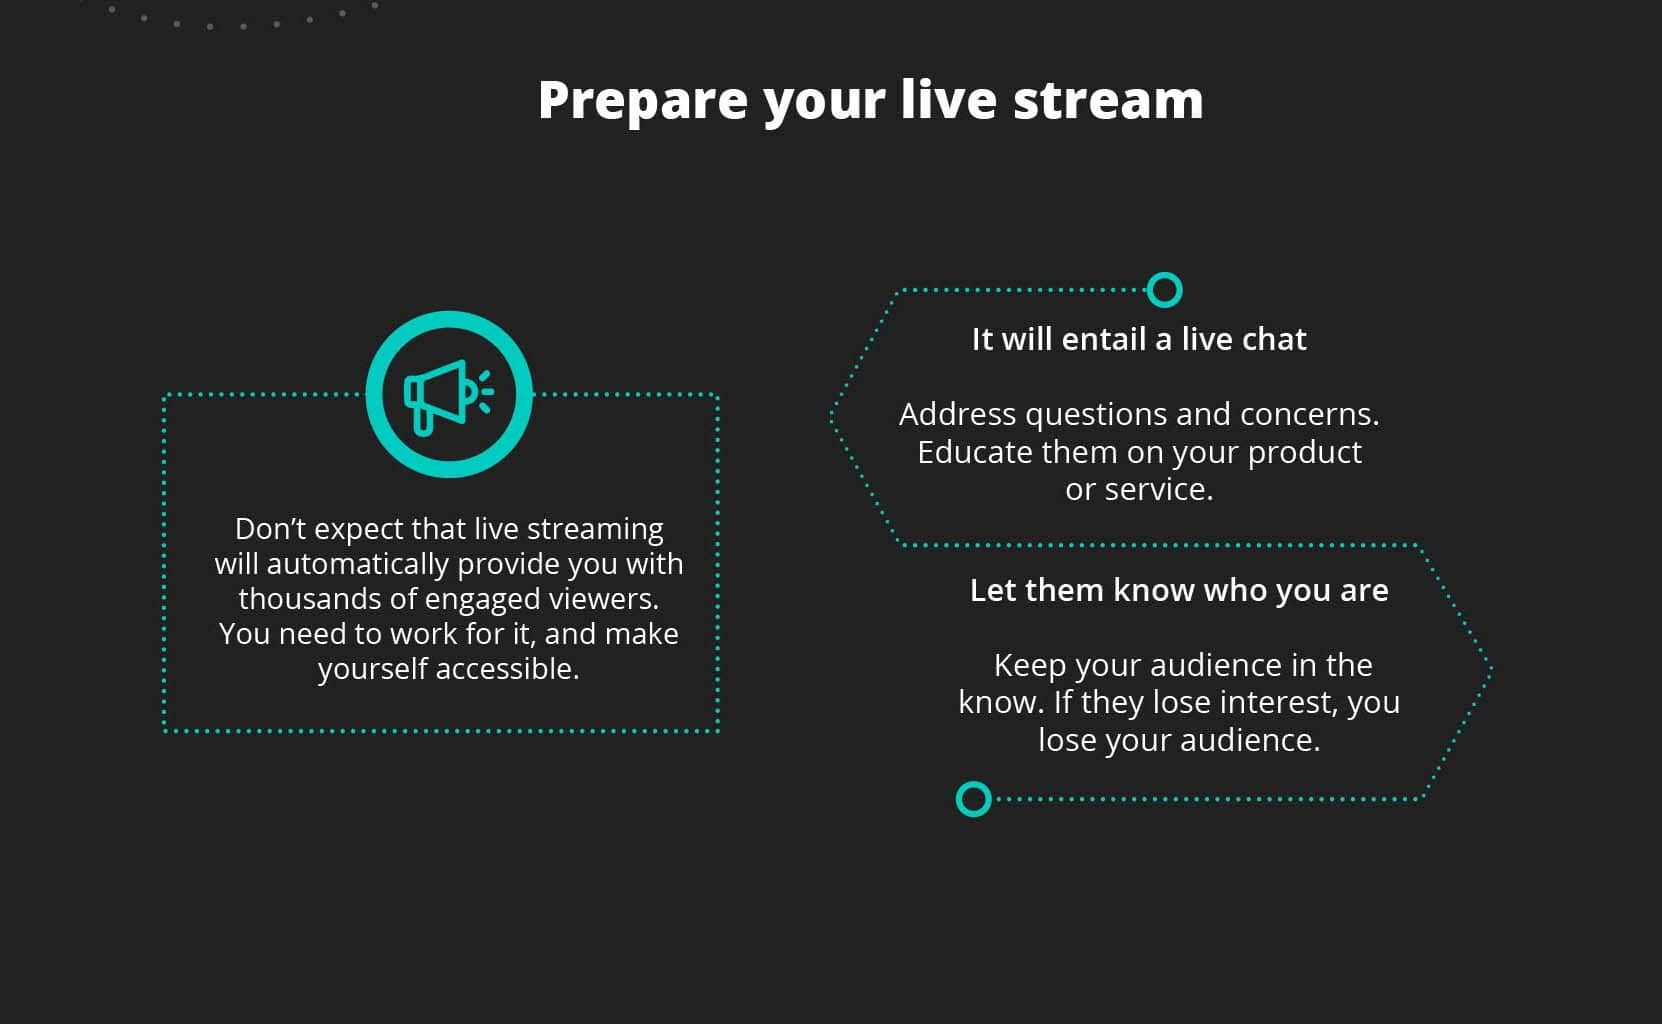 How to prepare a live streaming